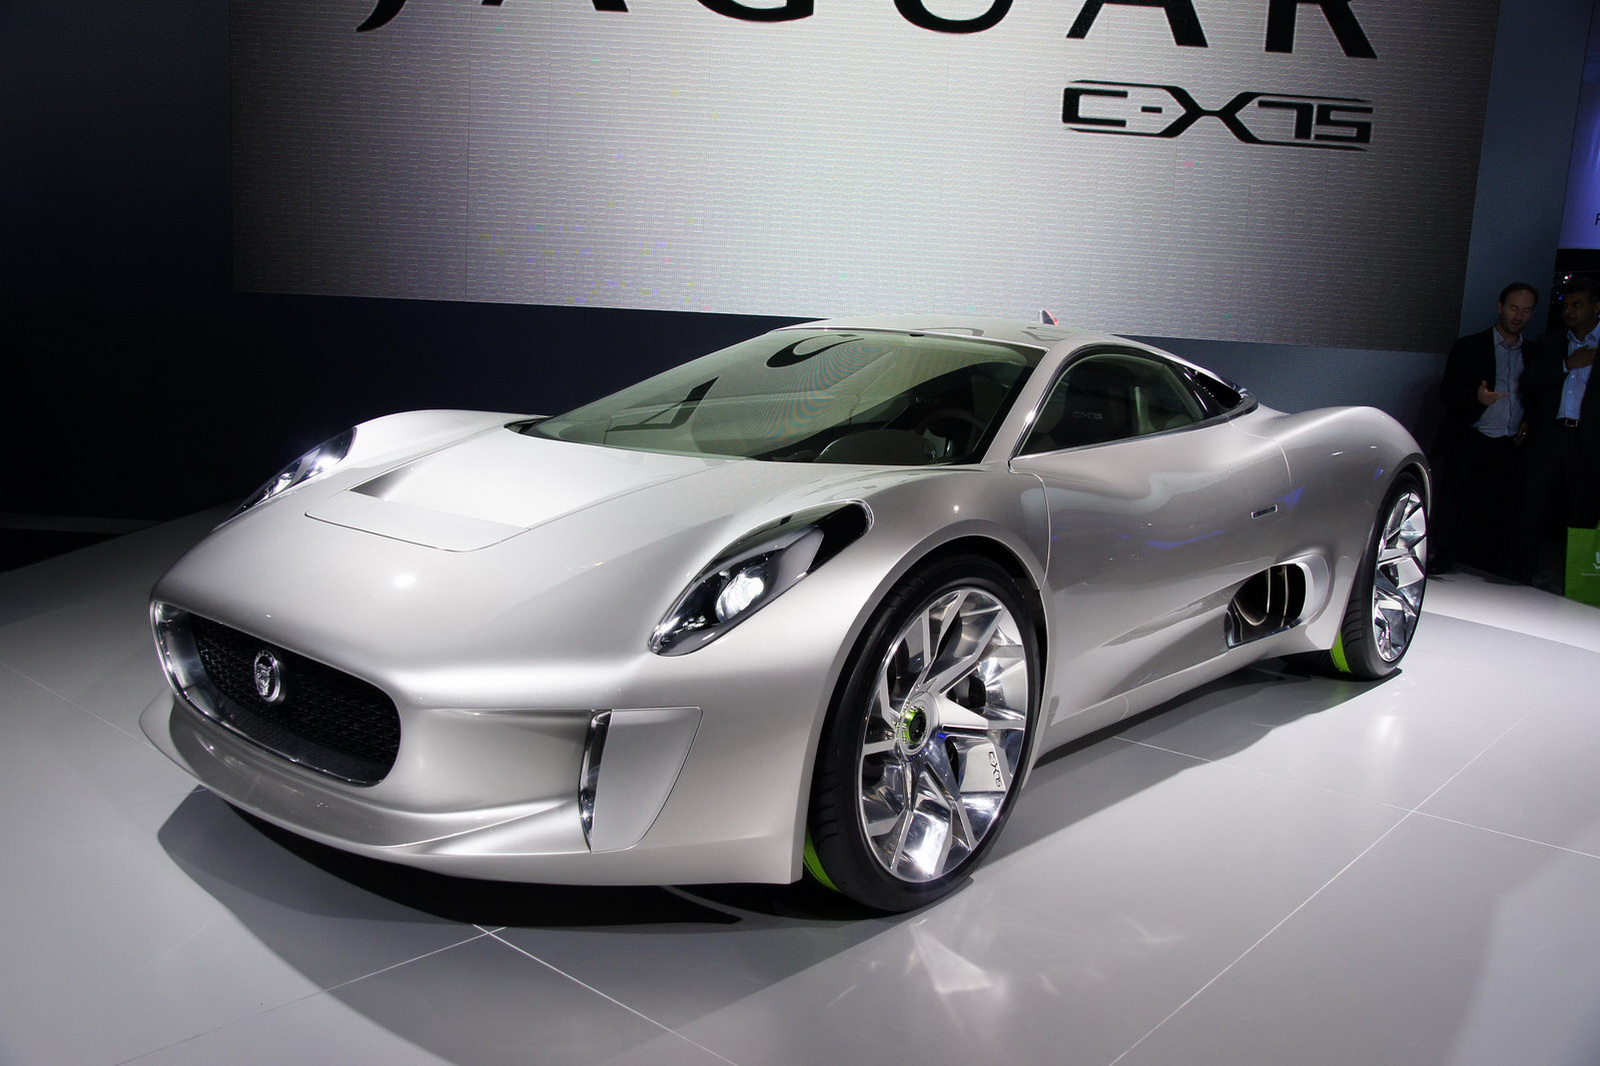 Jaguar CX 75 HD Wallpapers High Definition Free